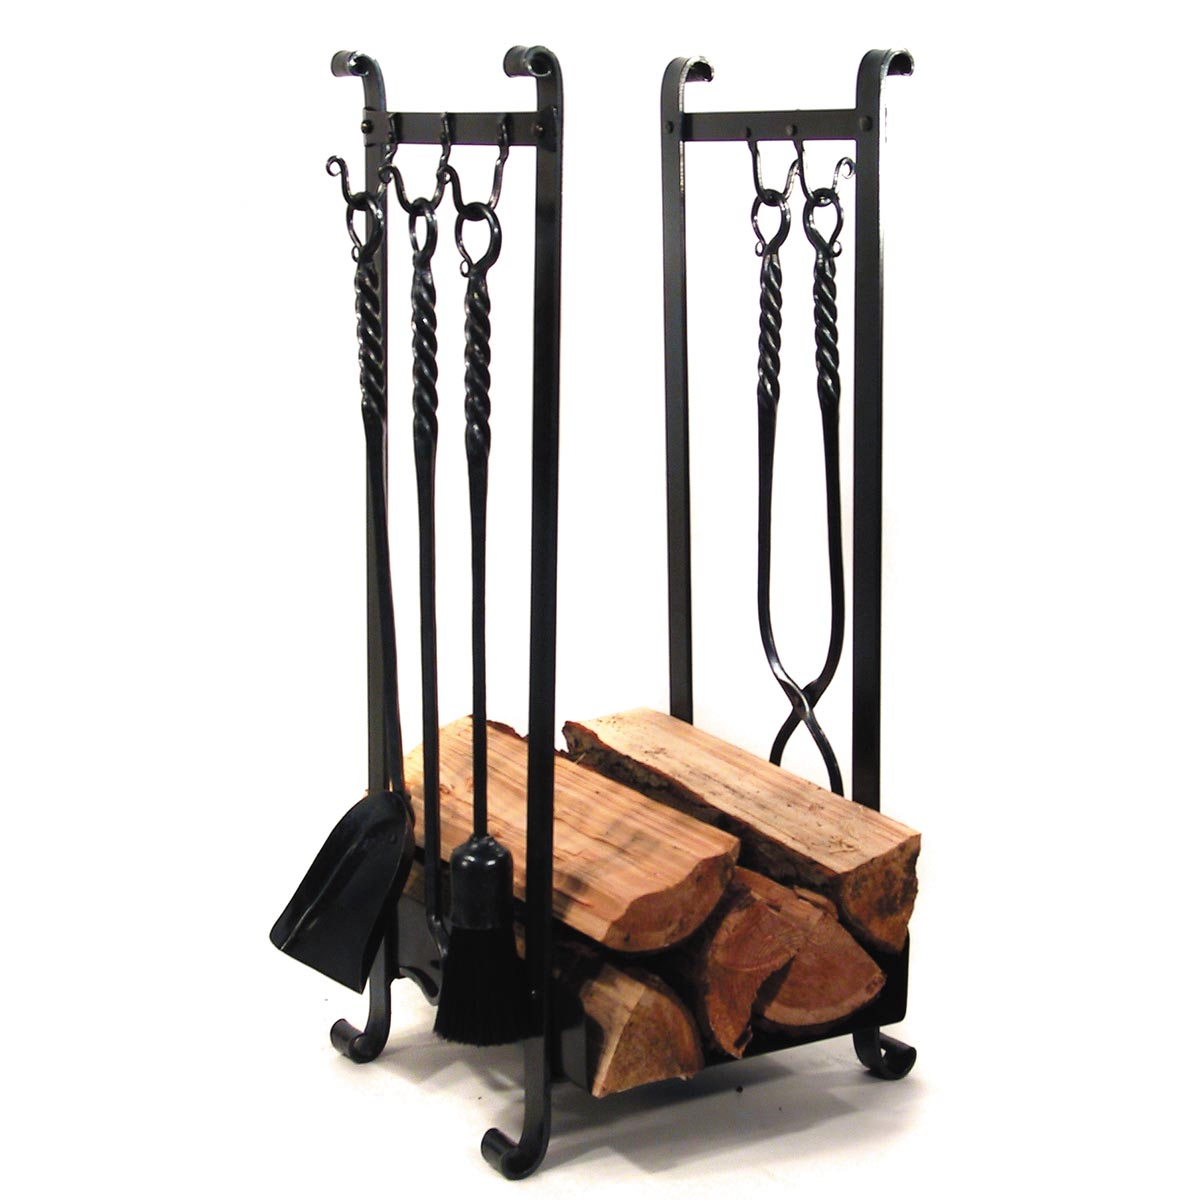 Awesome wrought iron fireplace tools pine firelace tool for your home interior tool improvements